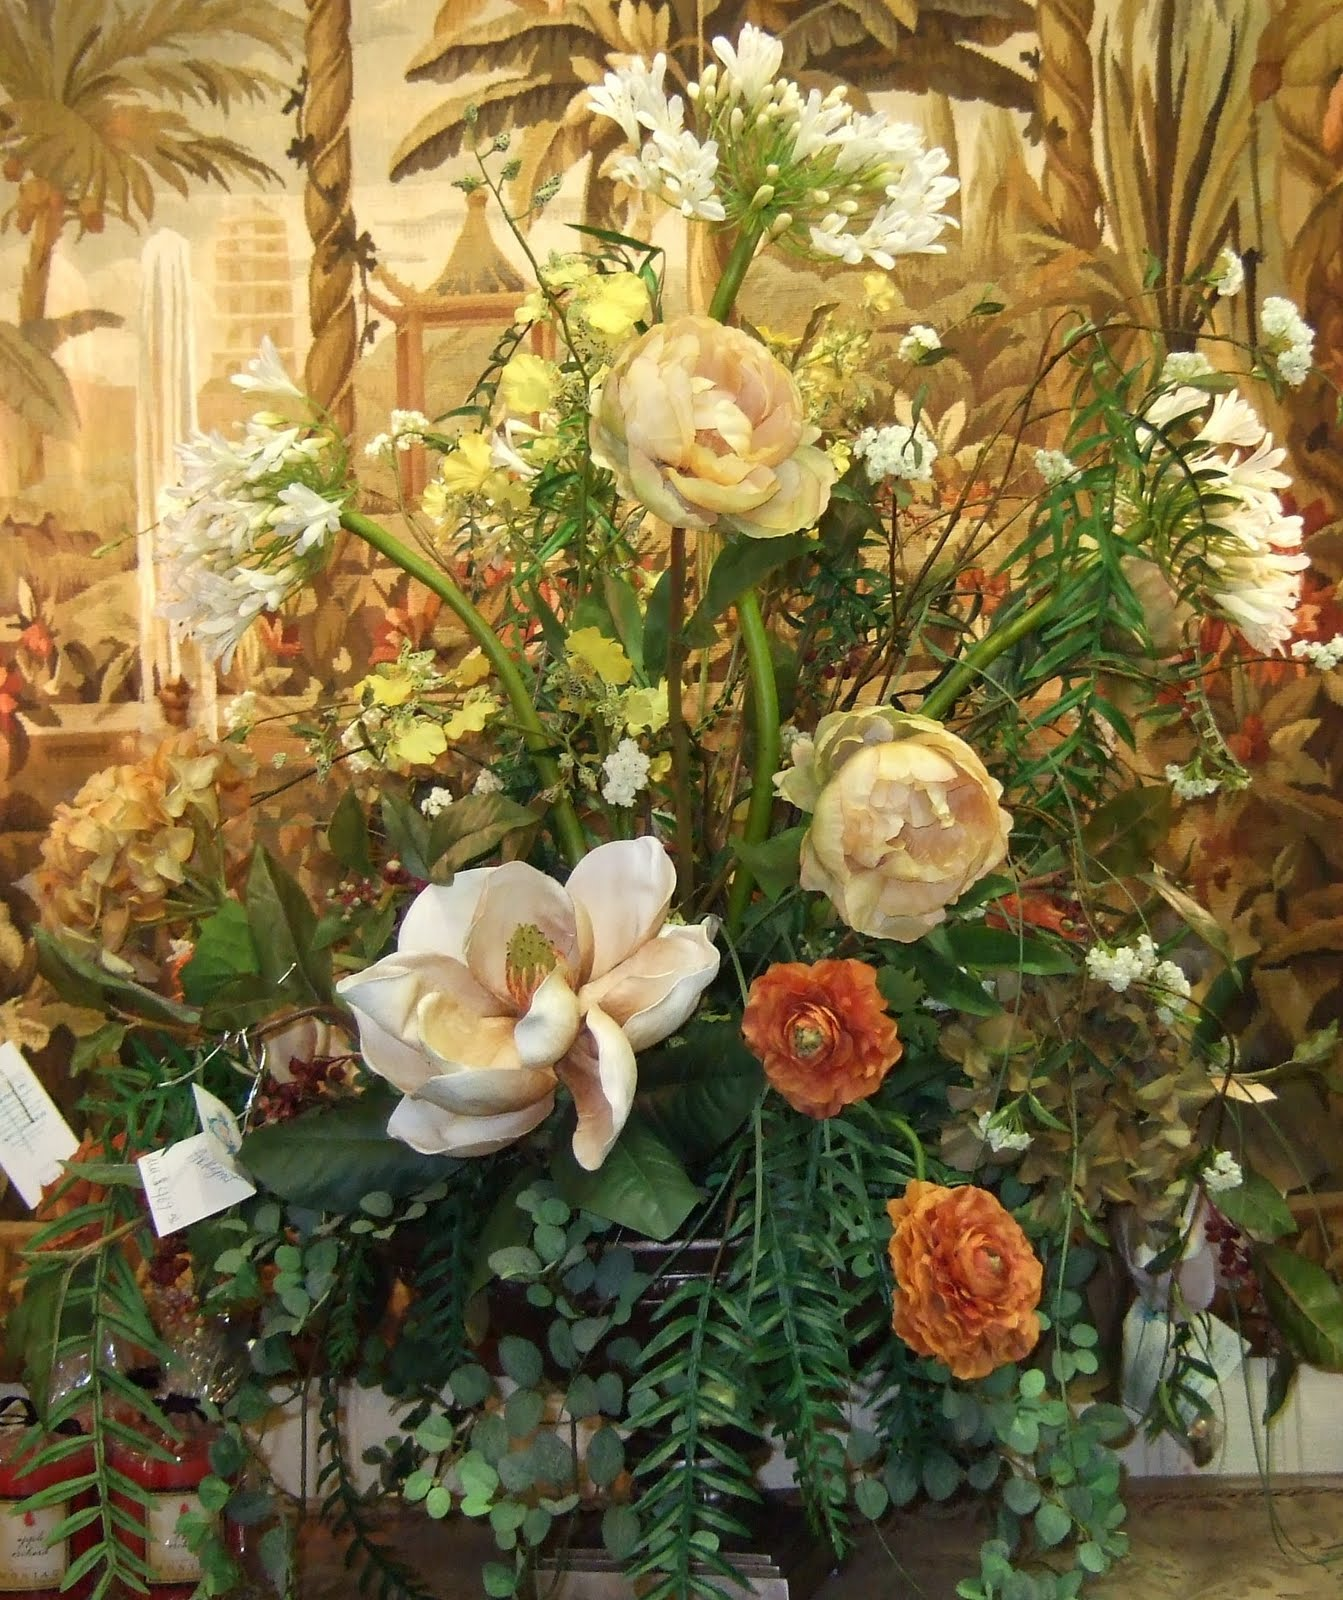 Ana silk flowers pictures luxurious large floral